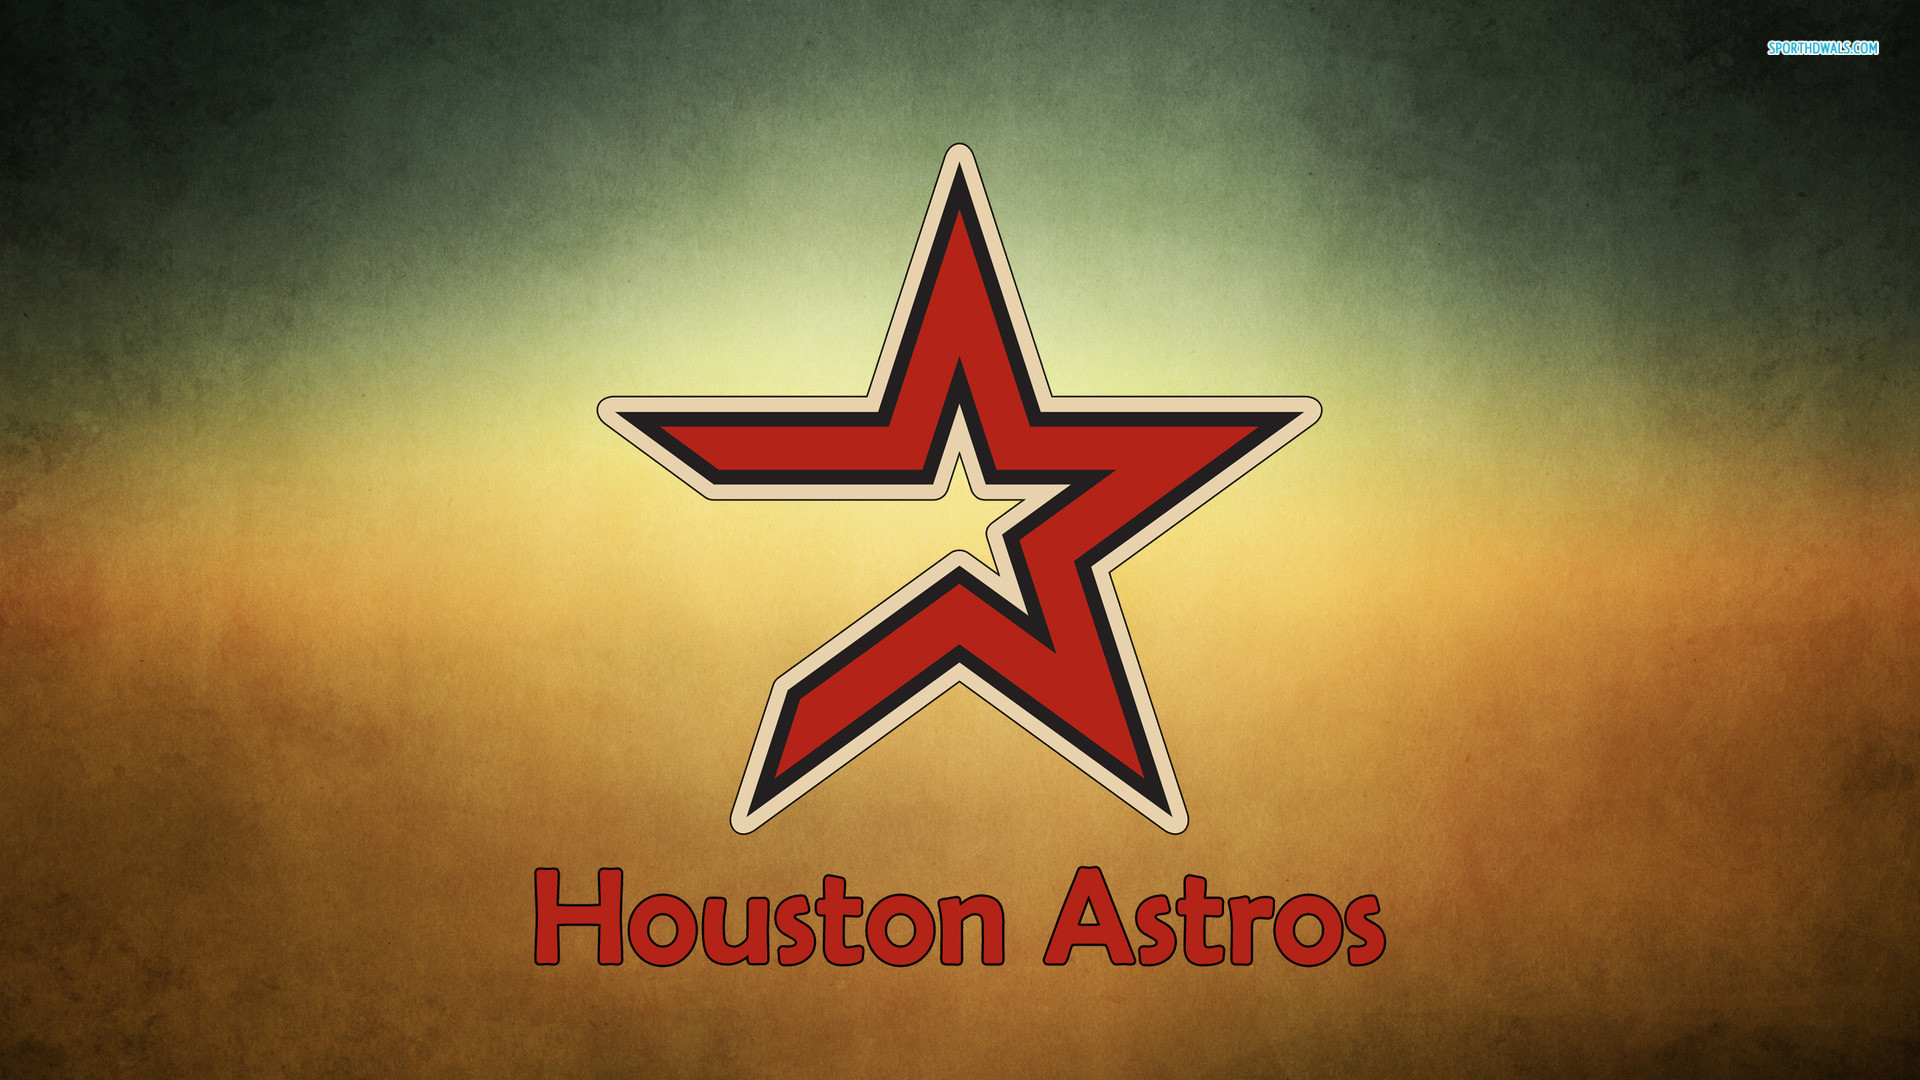 1920x1080 HOUSTON ASTROS mlb baseball (17) wallpaper |  | 232045 |  WallpaperUP